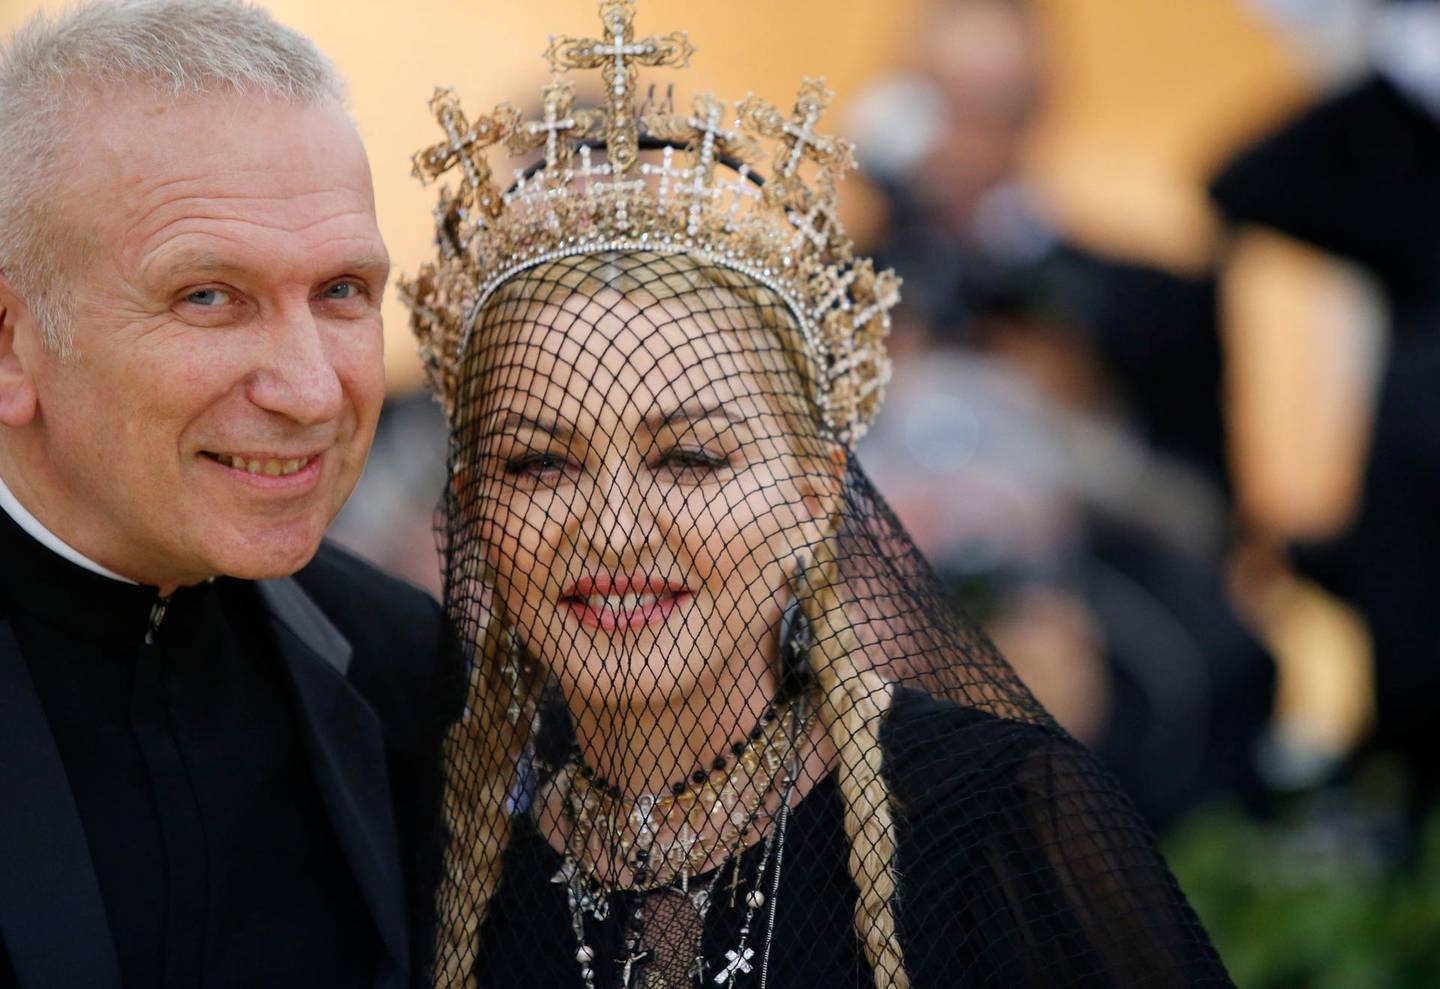 """Designer Jean Paul Gaultier and Madonna arrive at the Metropolitan Museum of Art Costume Institute Gala (Met Gala) to celebrate the opening of """"Heavenly Bodies: Fashion and the Catholic Imagination"""" in the Manhattan borough of New York, U.S., May 7, 2018. REUTERS/Eduardo Munoz"""